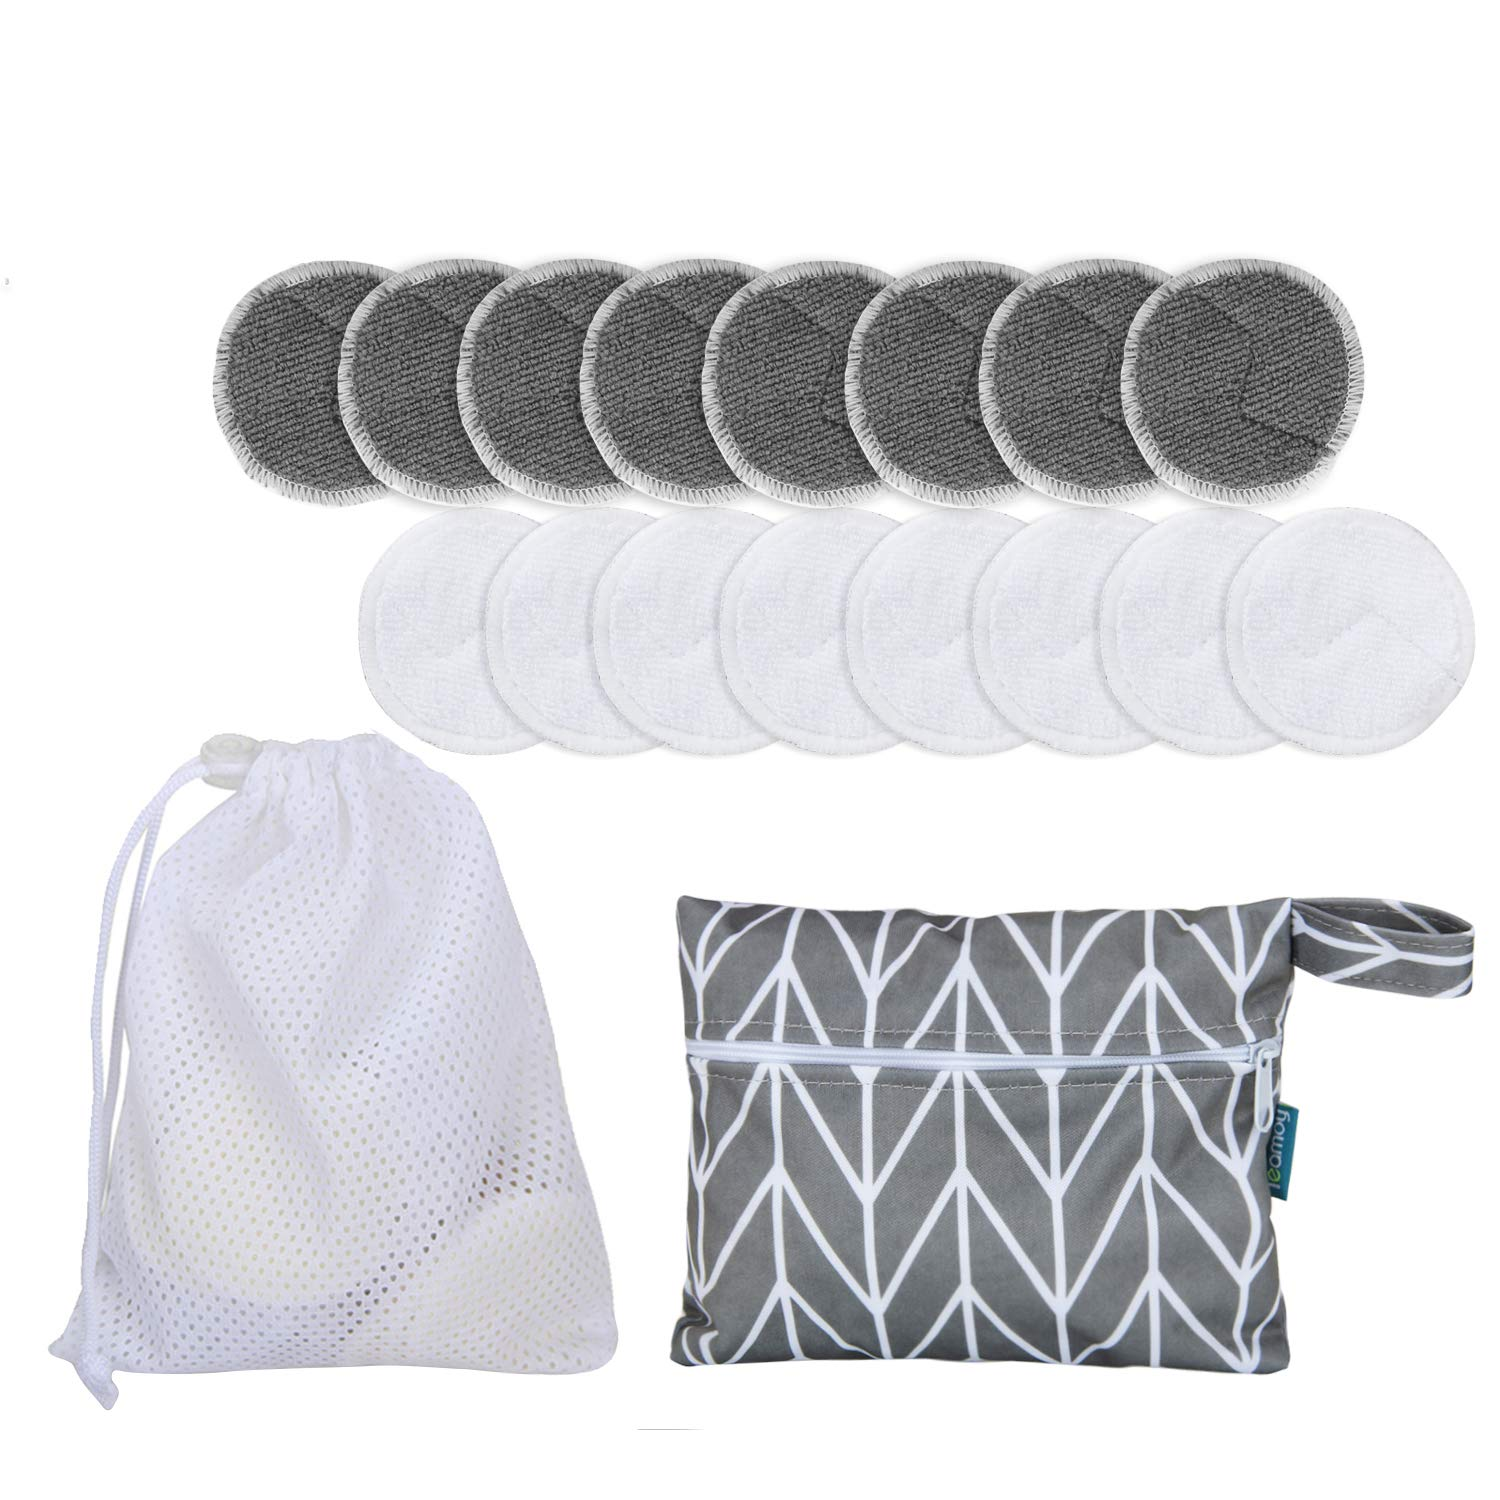 16pcs Reusable Make up Remover Pads with 2 EXTRA Bags(Laundry Bag+Storage Bag) By Teamoy